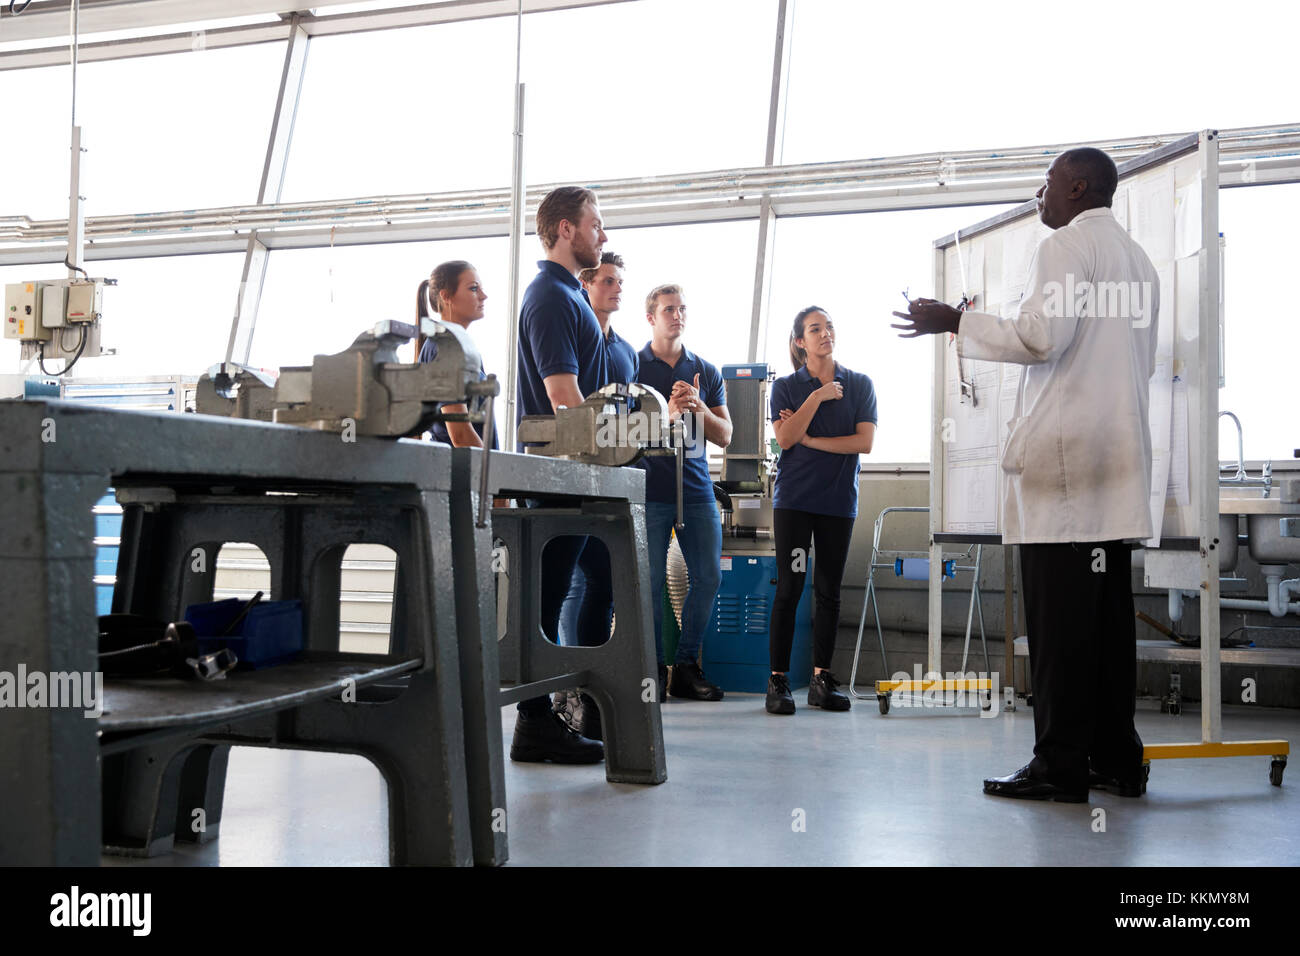 Engineering apprentices stand at a training presentation, low angle - Stock Image